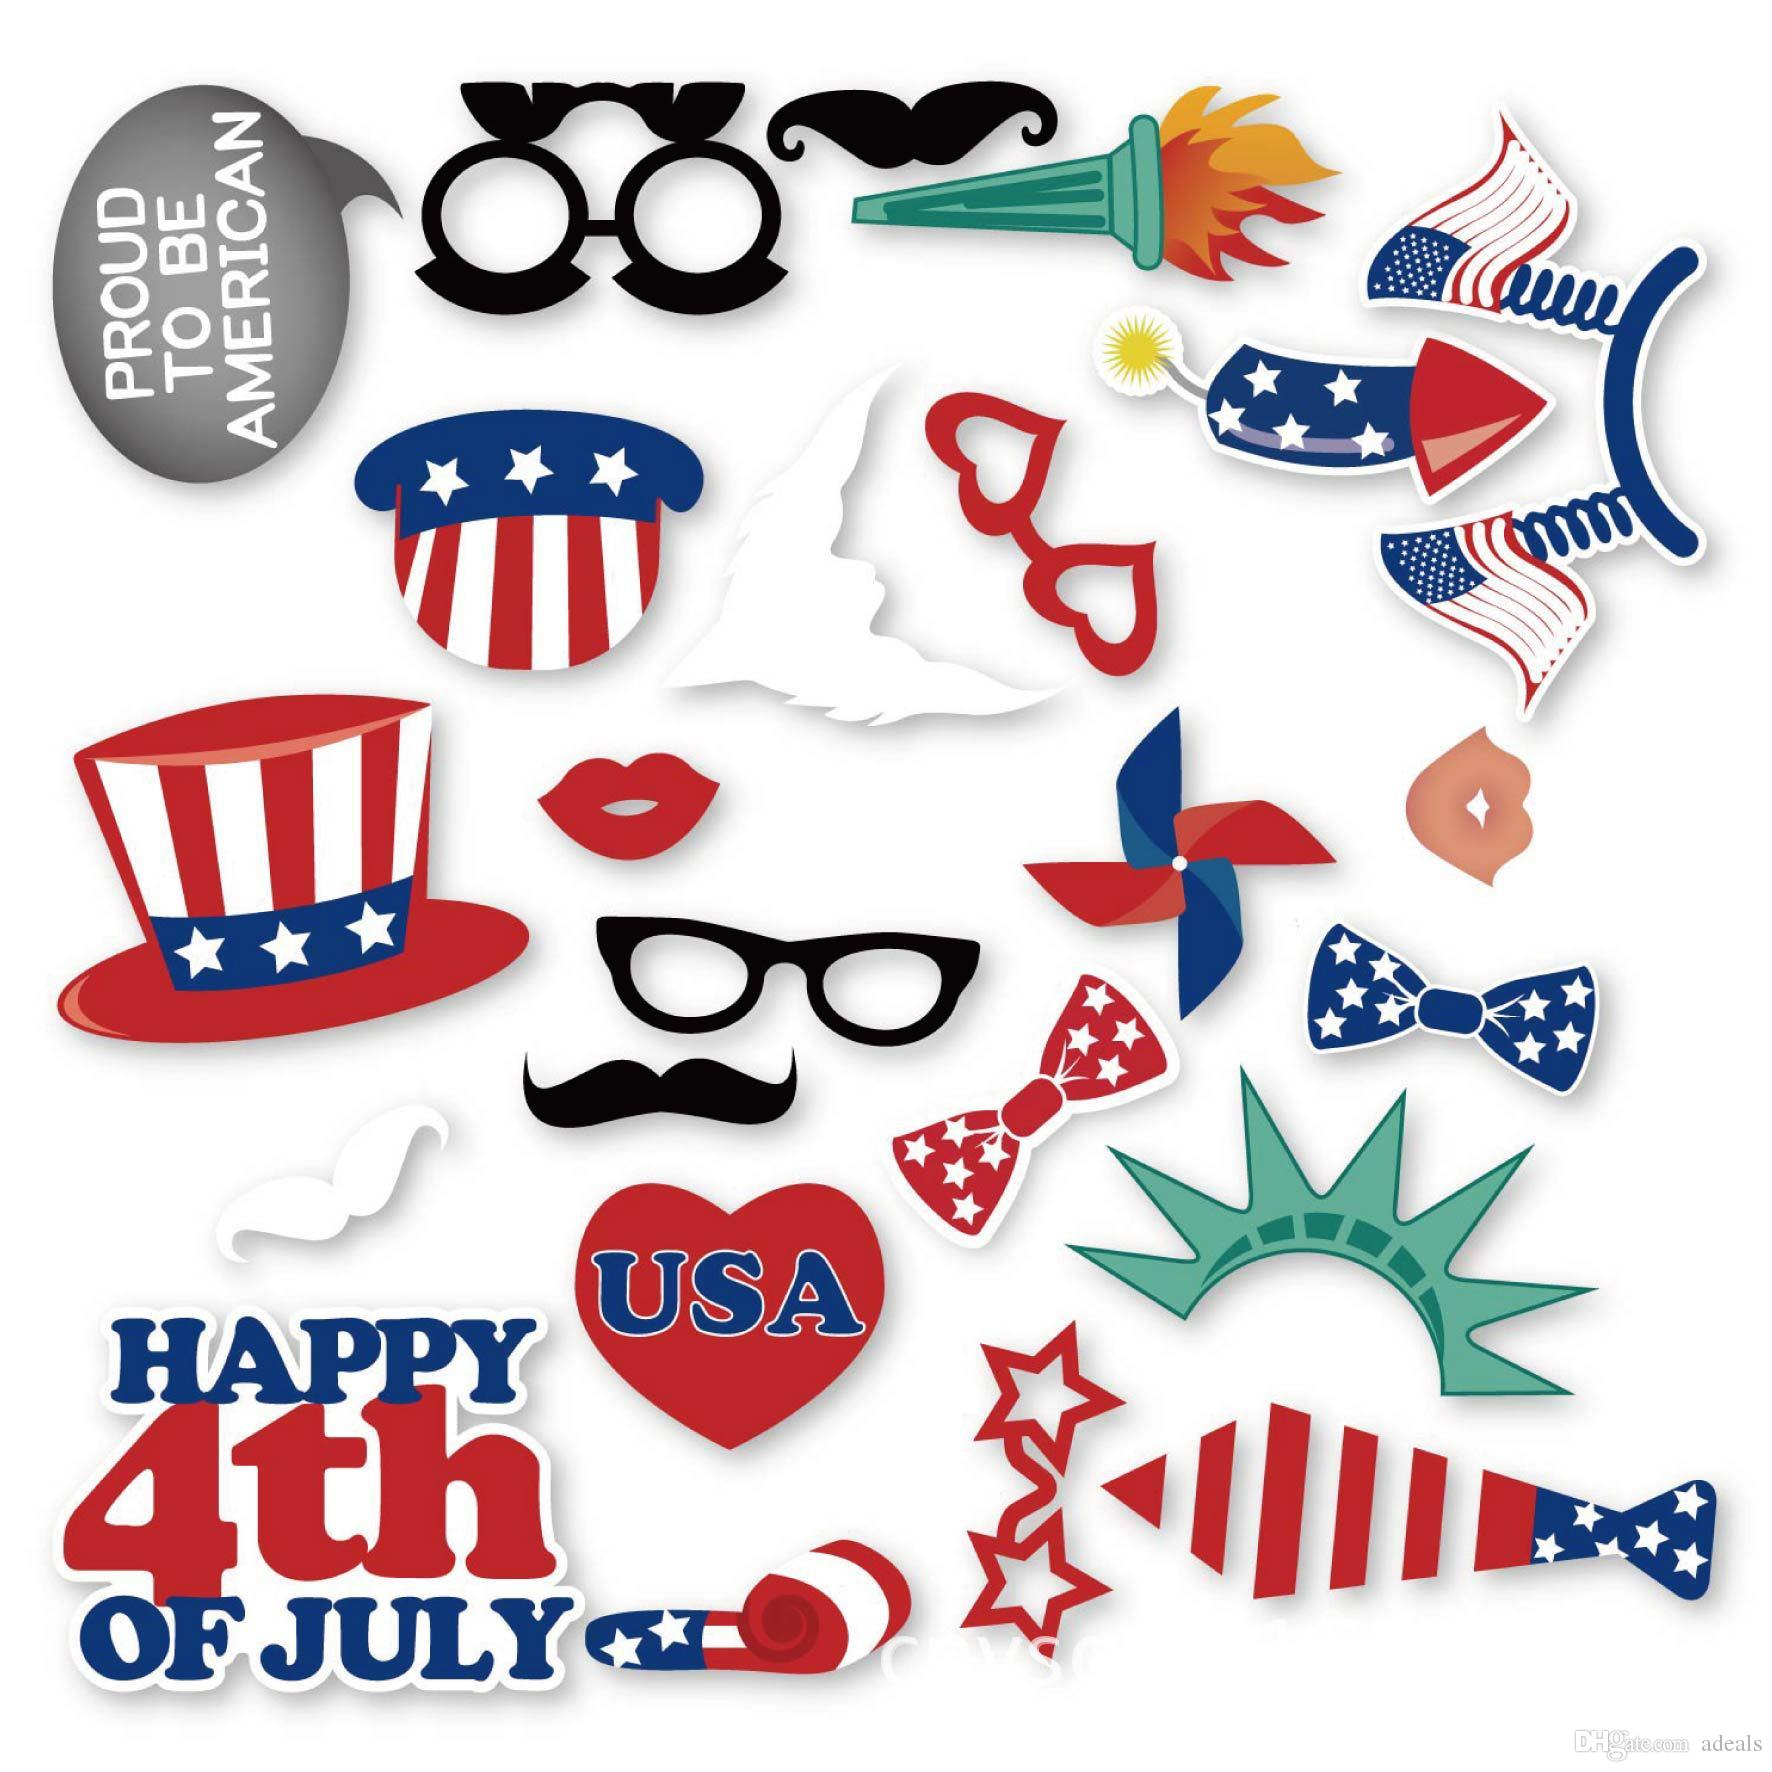 4th Of July Photo Booth Props Diy Kit For America Usa Independence